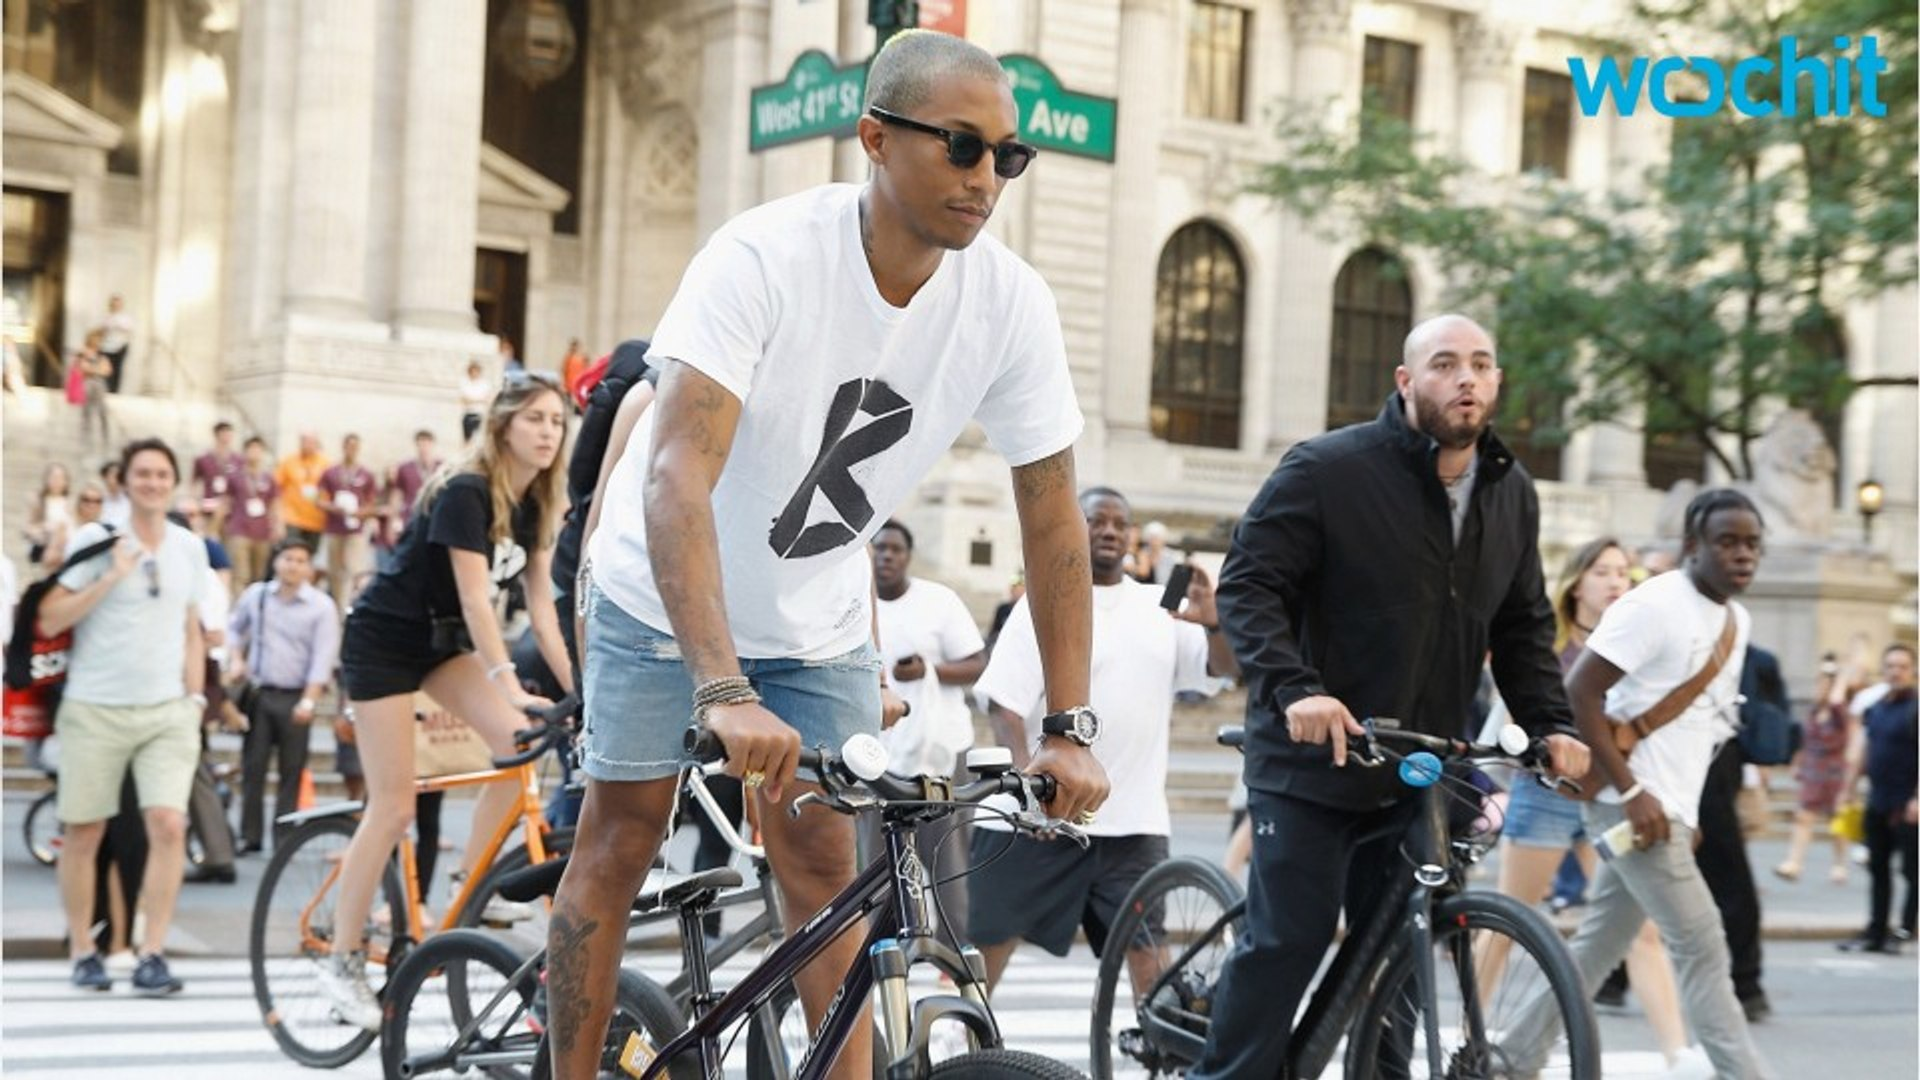 Green-Haired Pharrell Williams Spends a Day on a Bike Tour of NYC's Various G-Star Stores